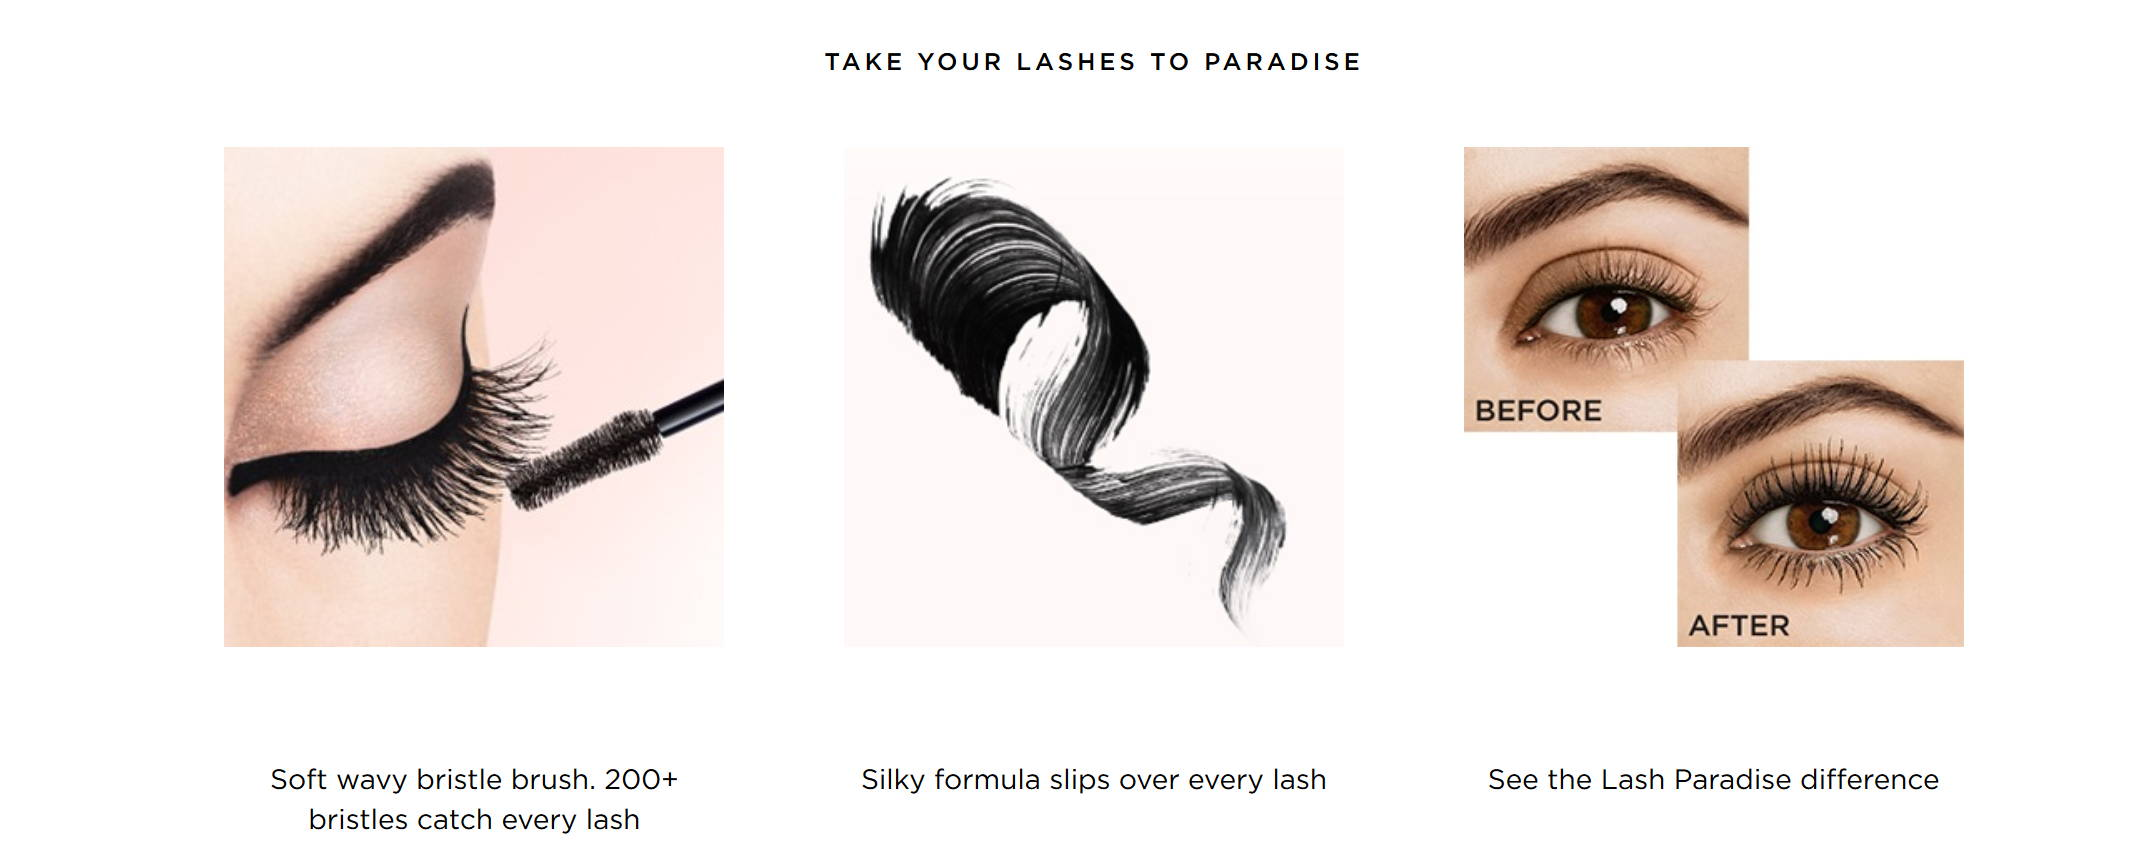 130c81376f8 L'Oreal Paris Lash Paradise Collection | Makeup | feel22 | Lebanon ...